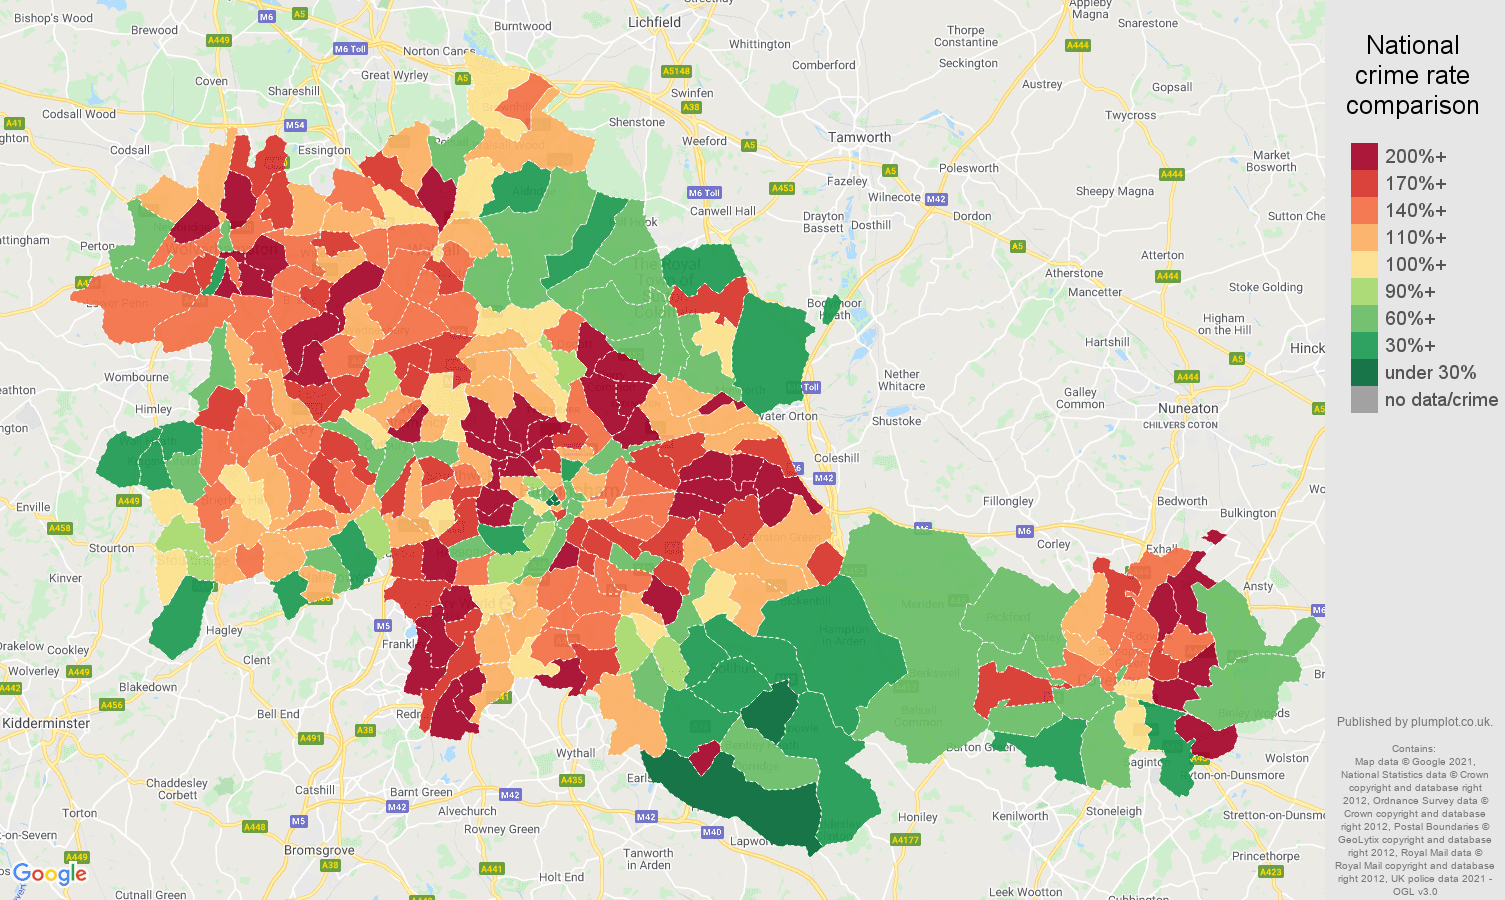 West Midlands county violent crime rate comparison map